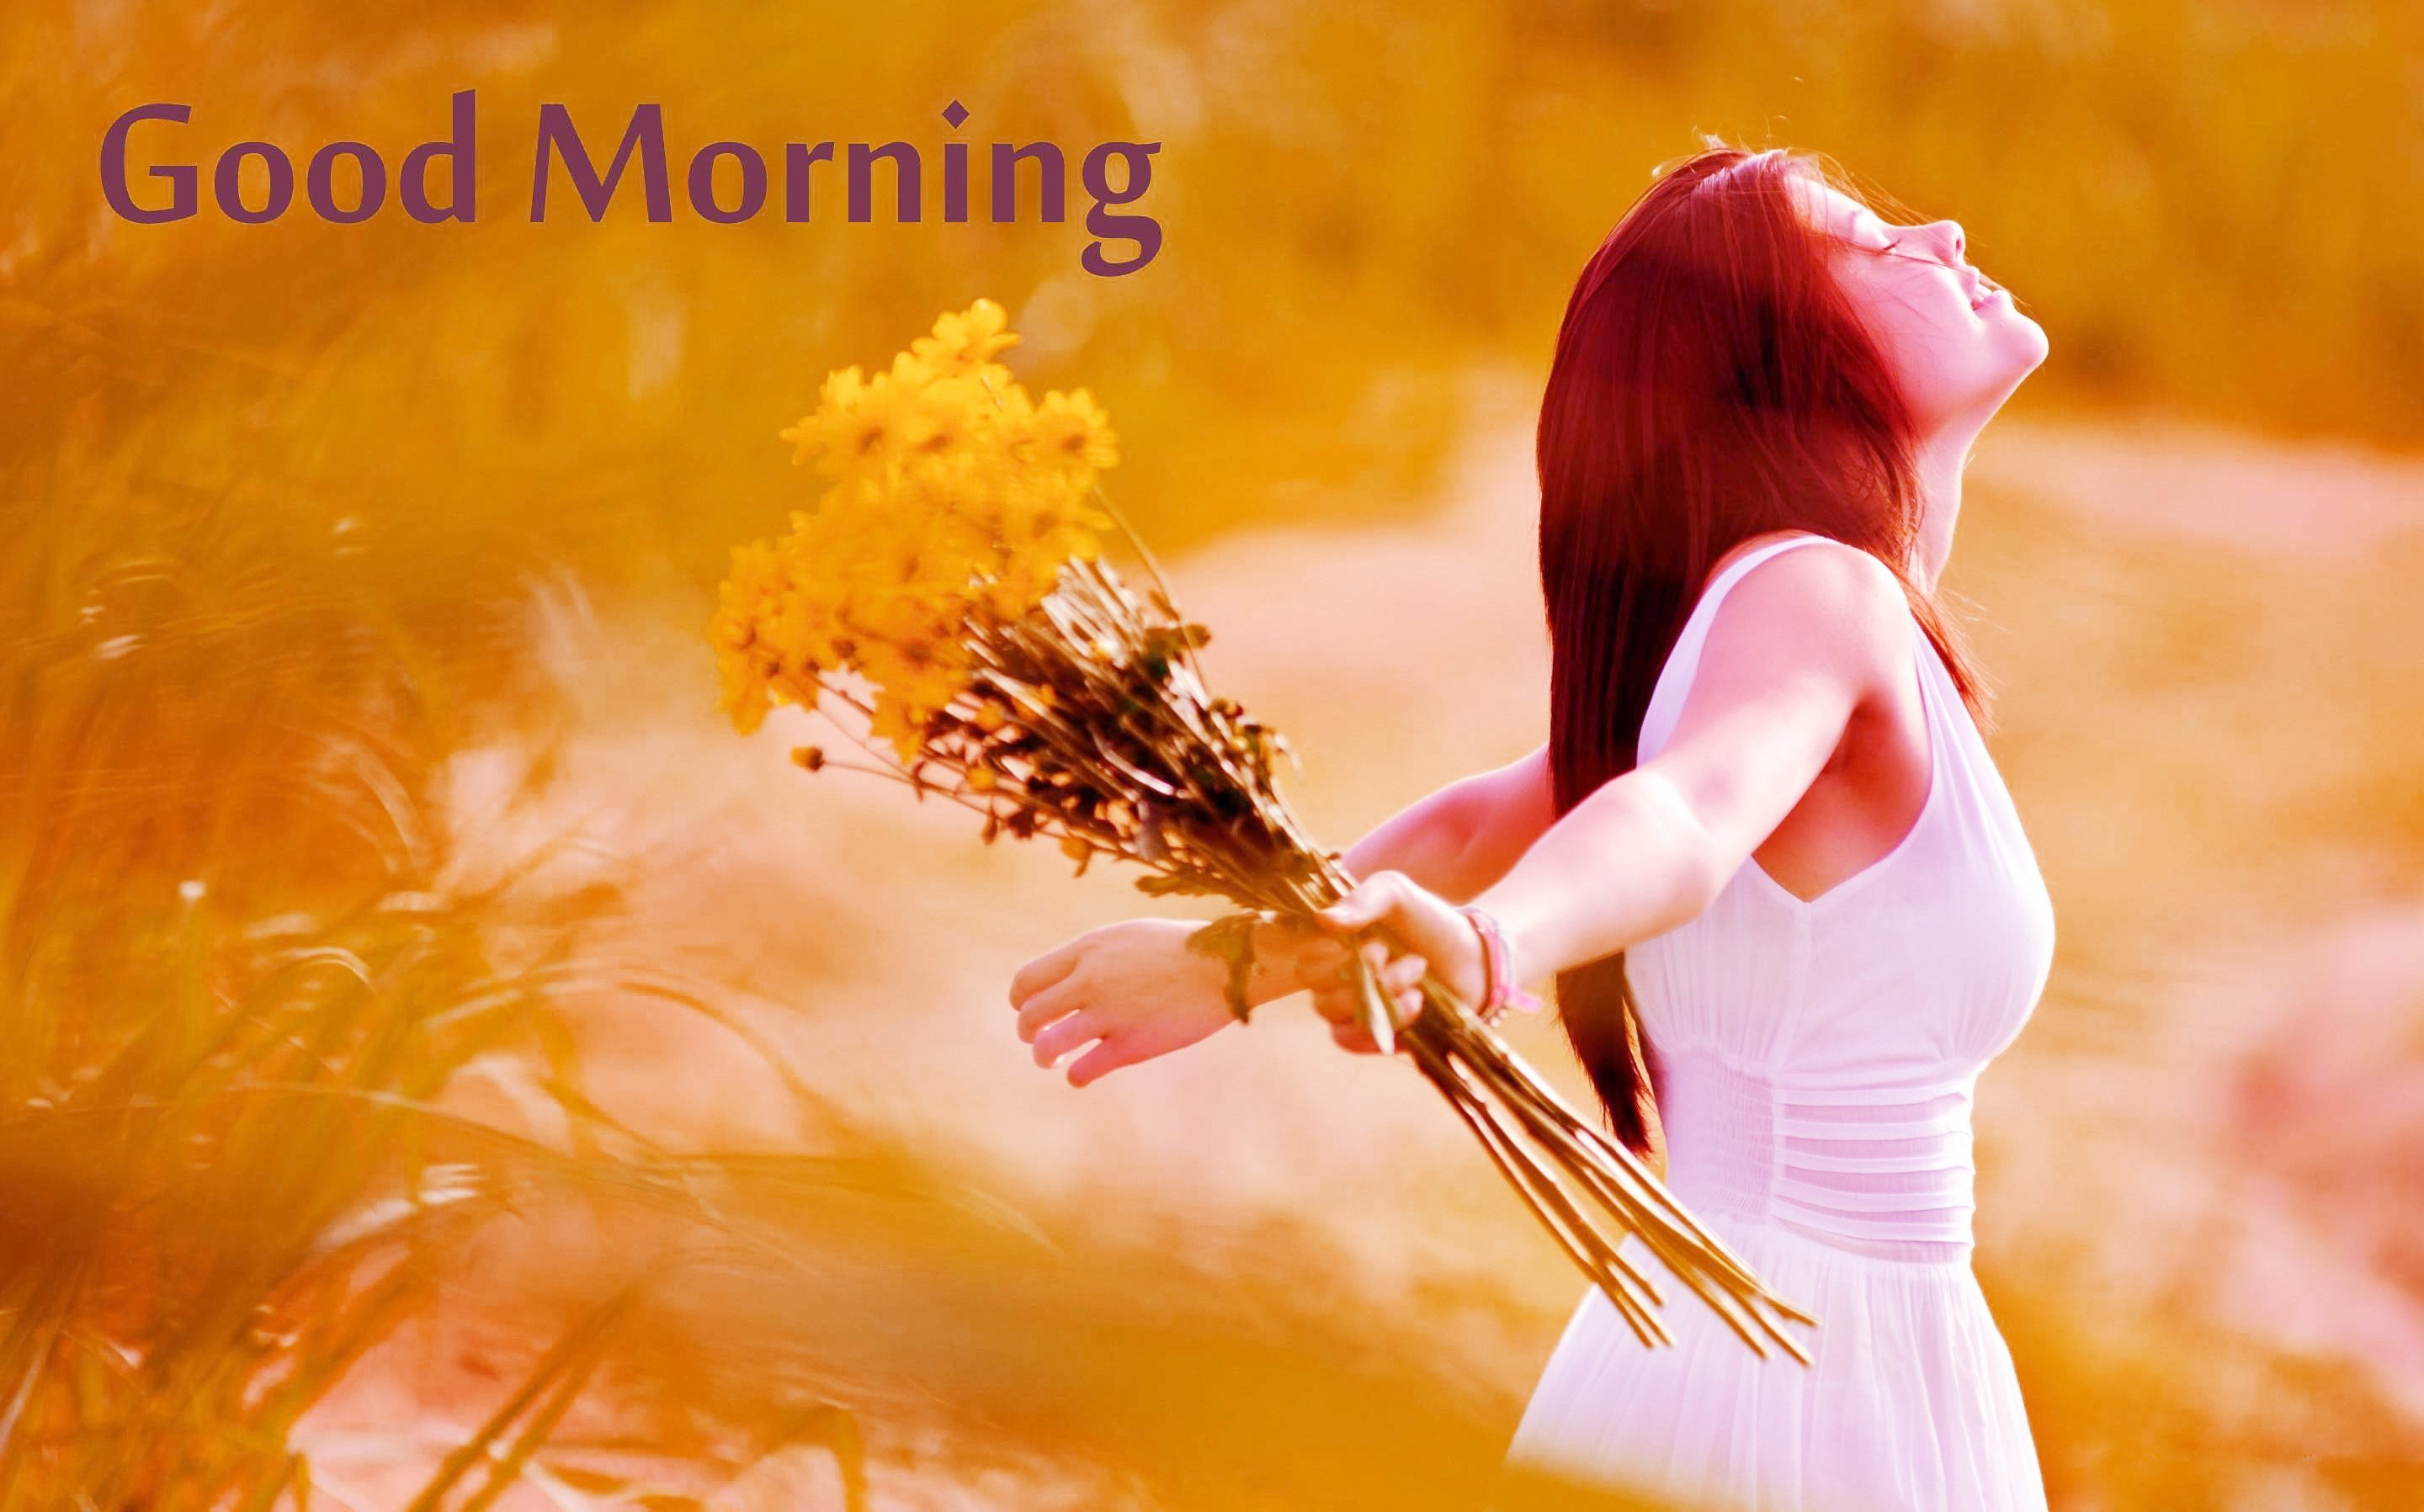 Good Morning Images Pictures - Good Morning Quotes Hd - HD Wallpaper